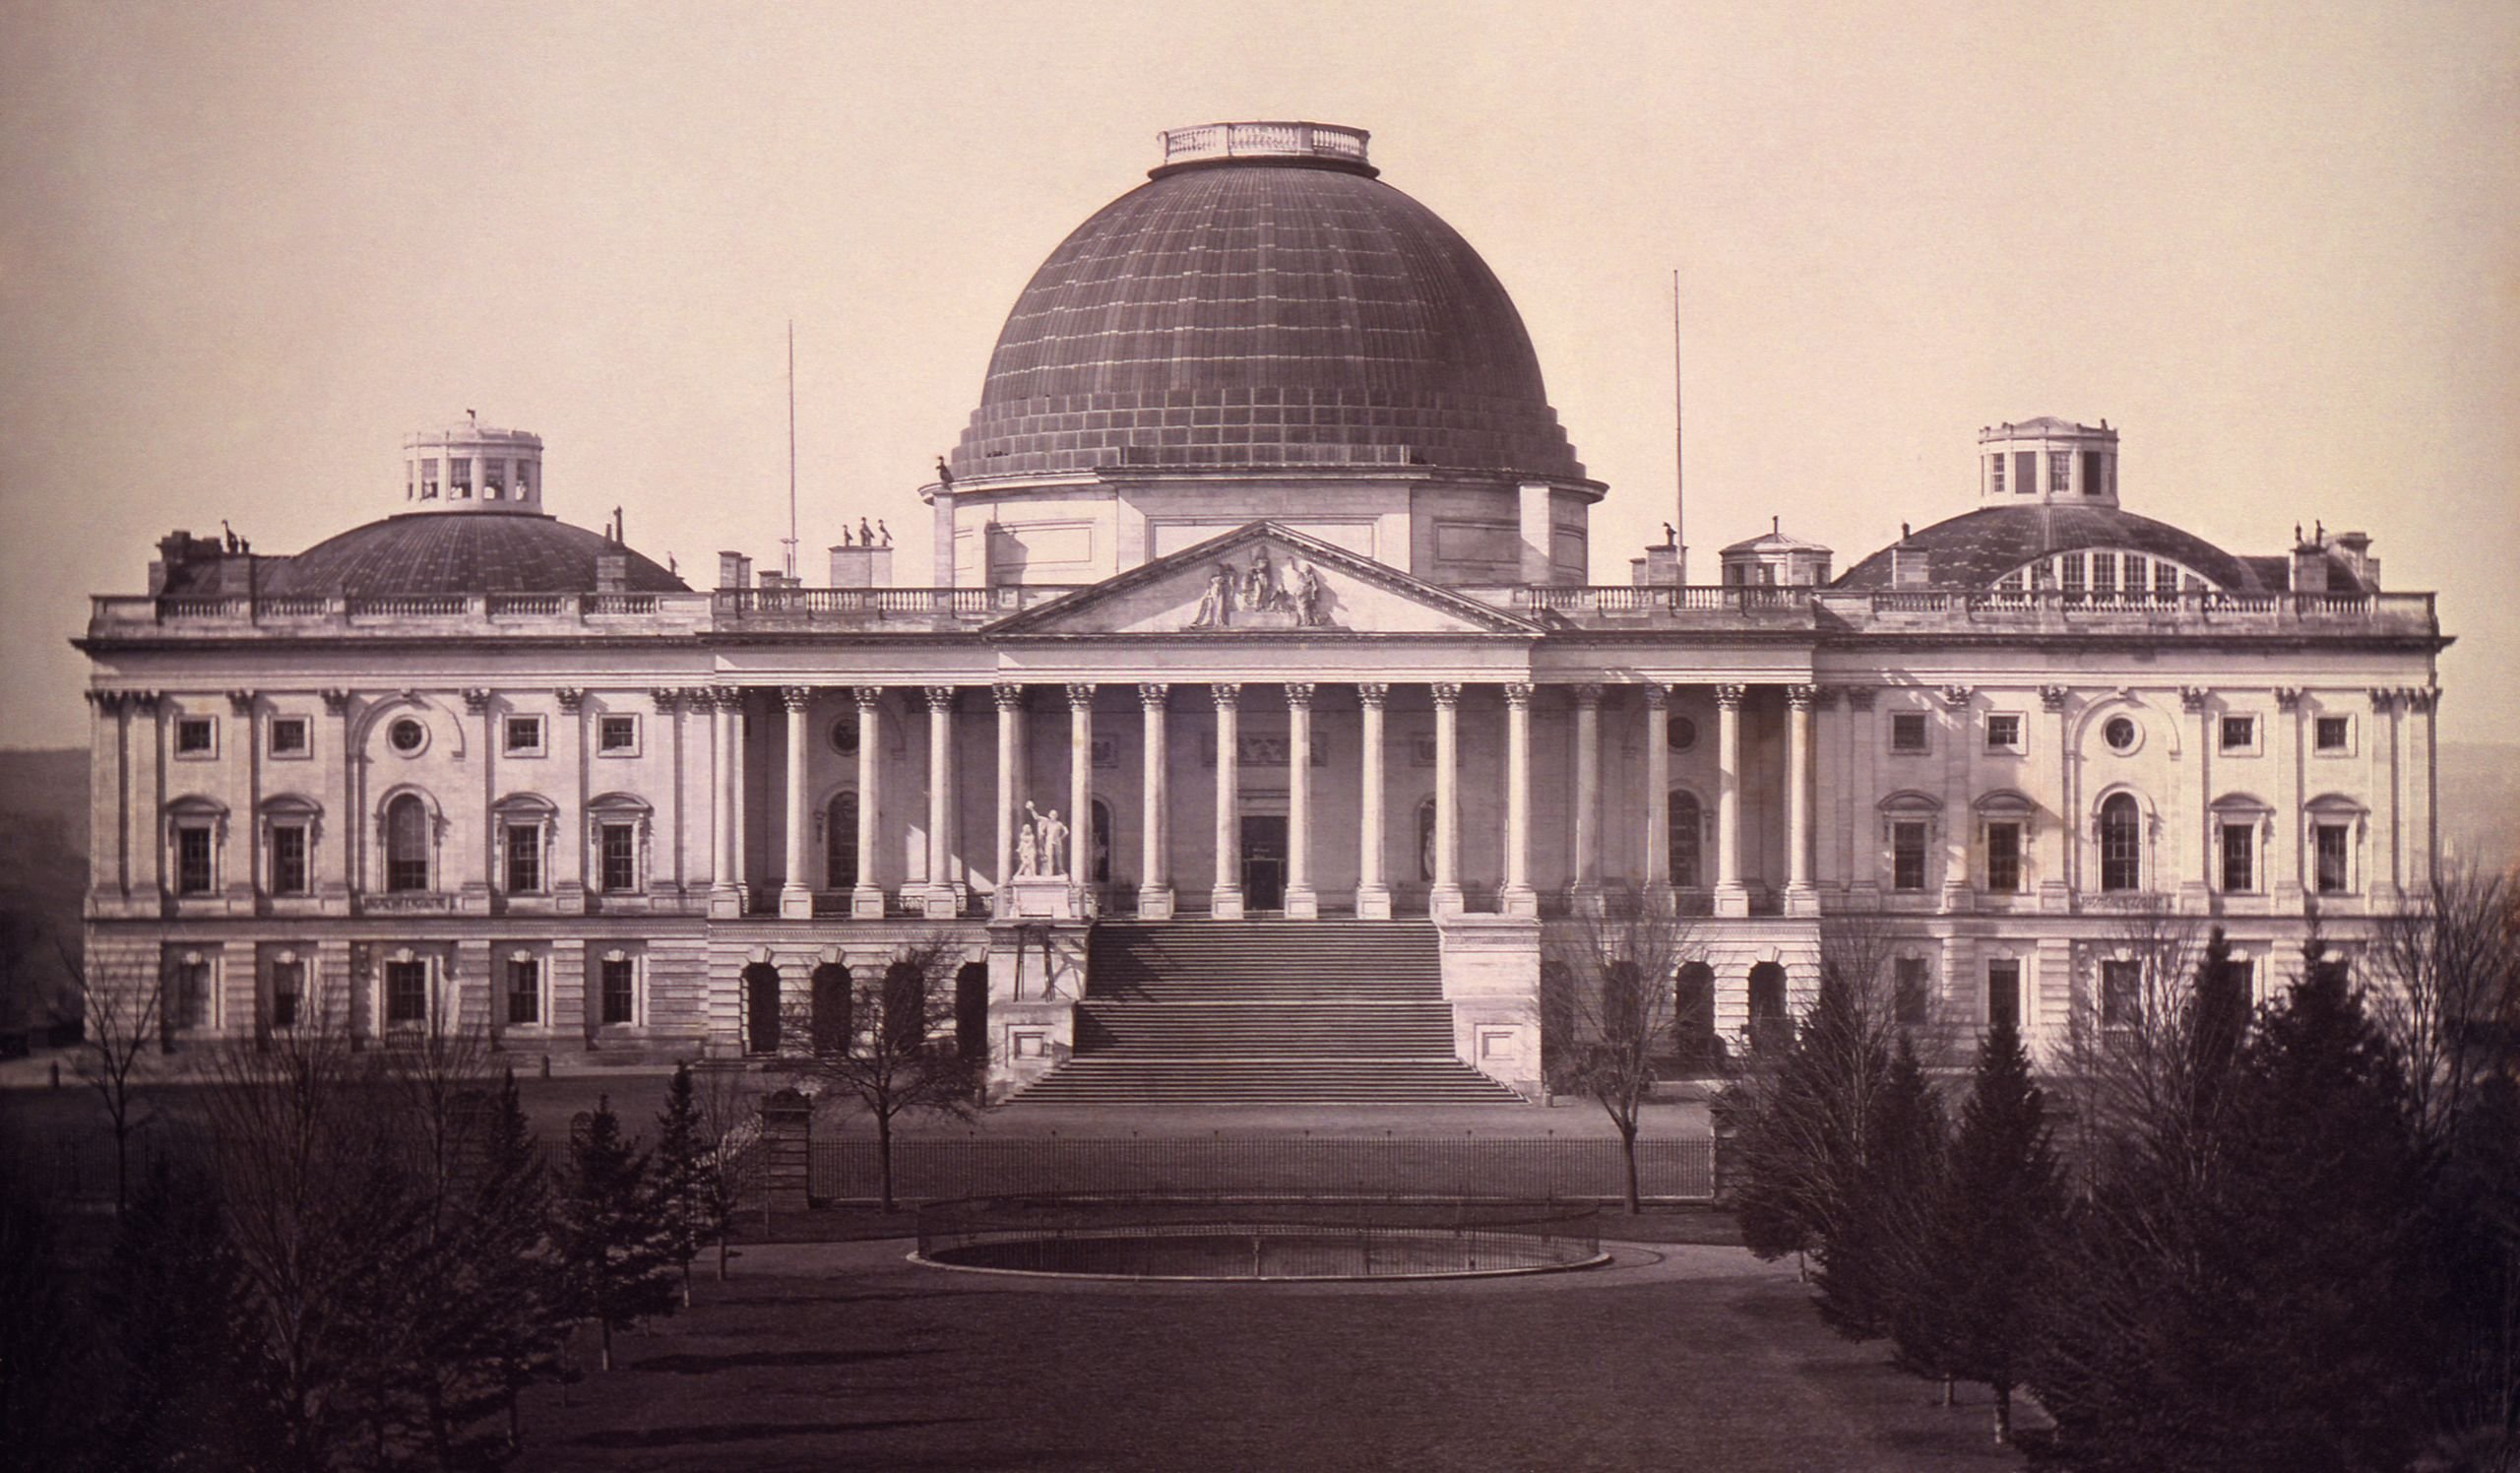 A daguerreotype photograph of the Capitol in 1846. Photo from Library of Congress.